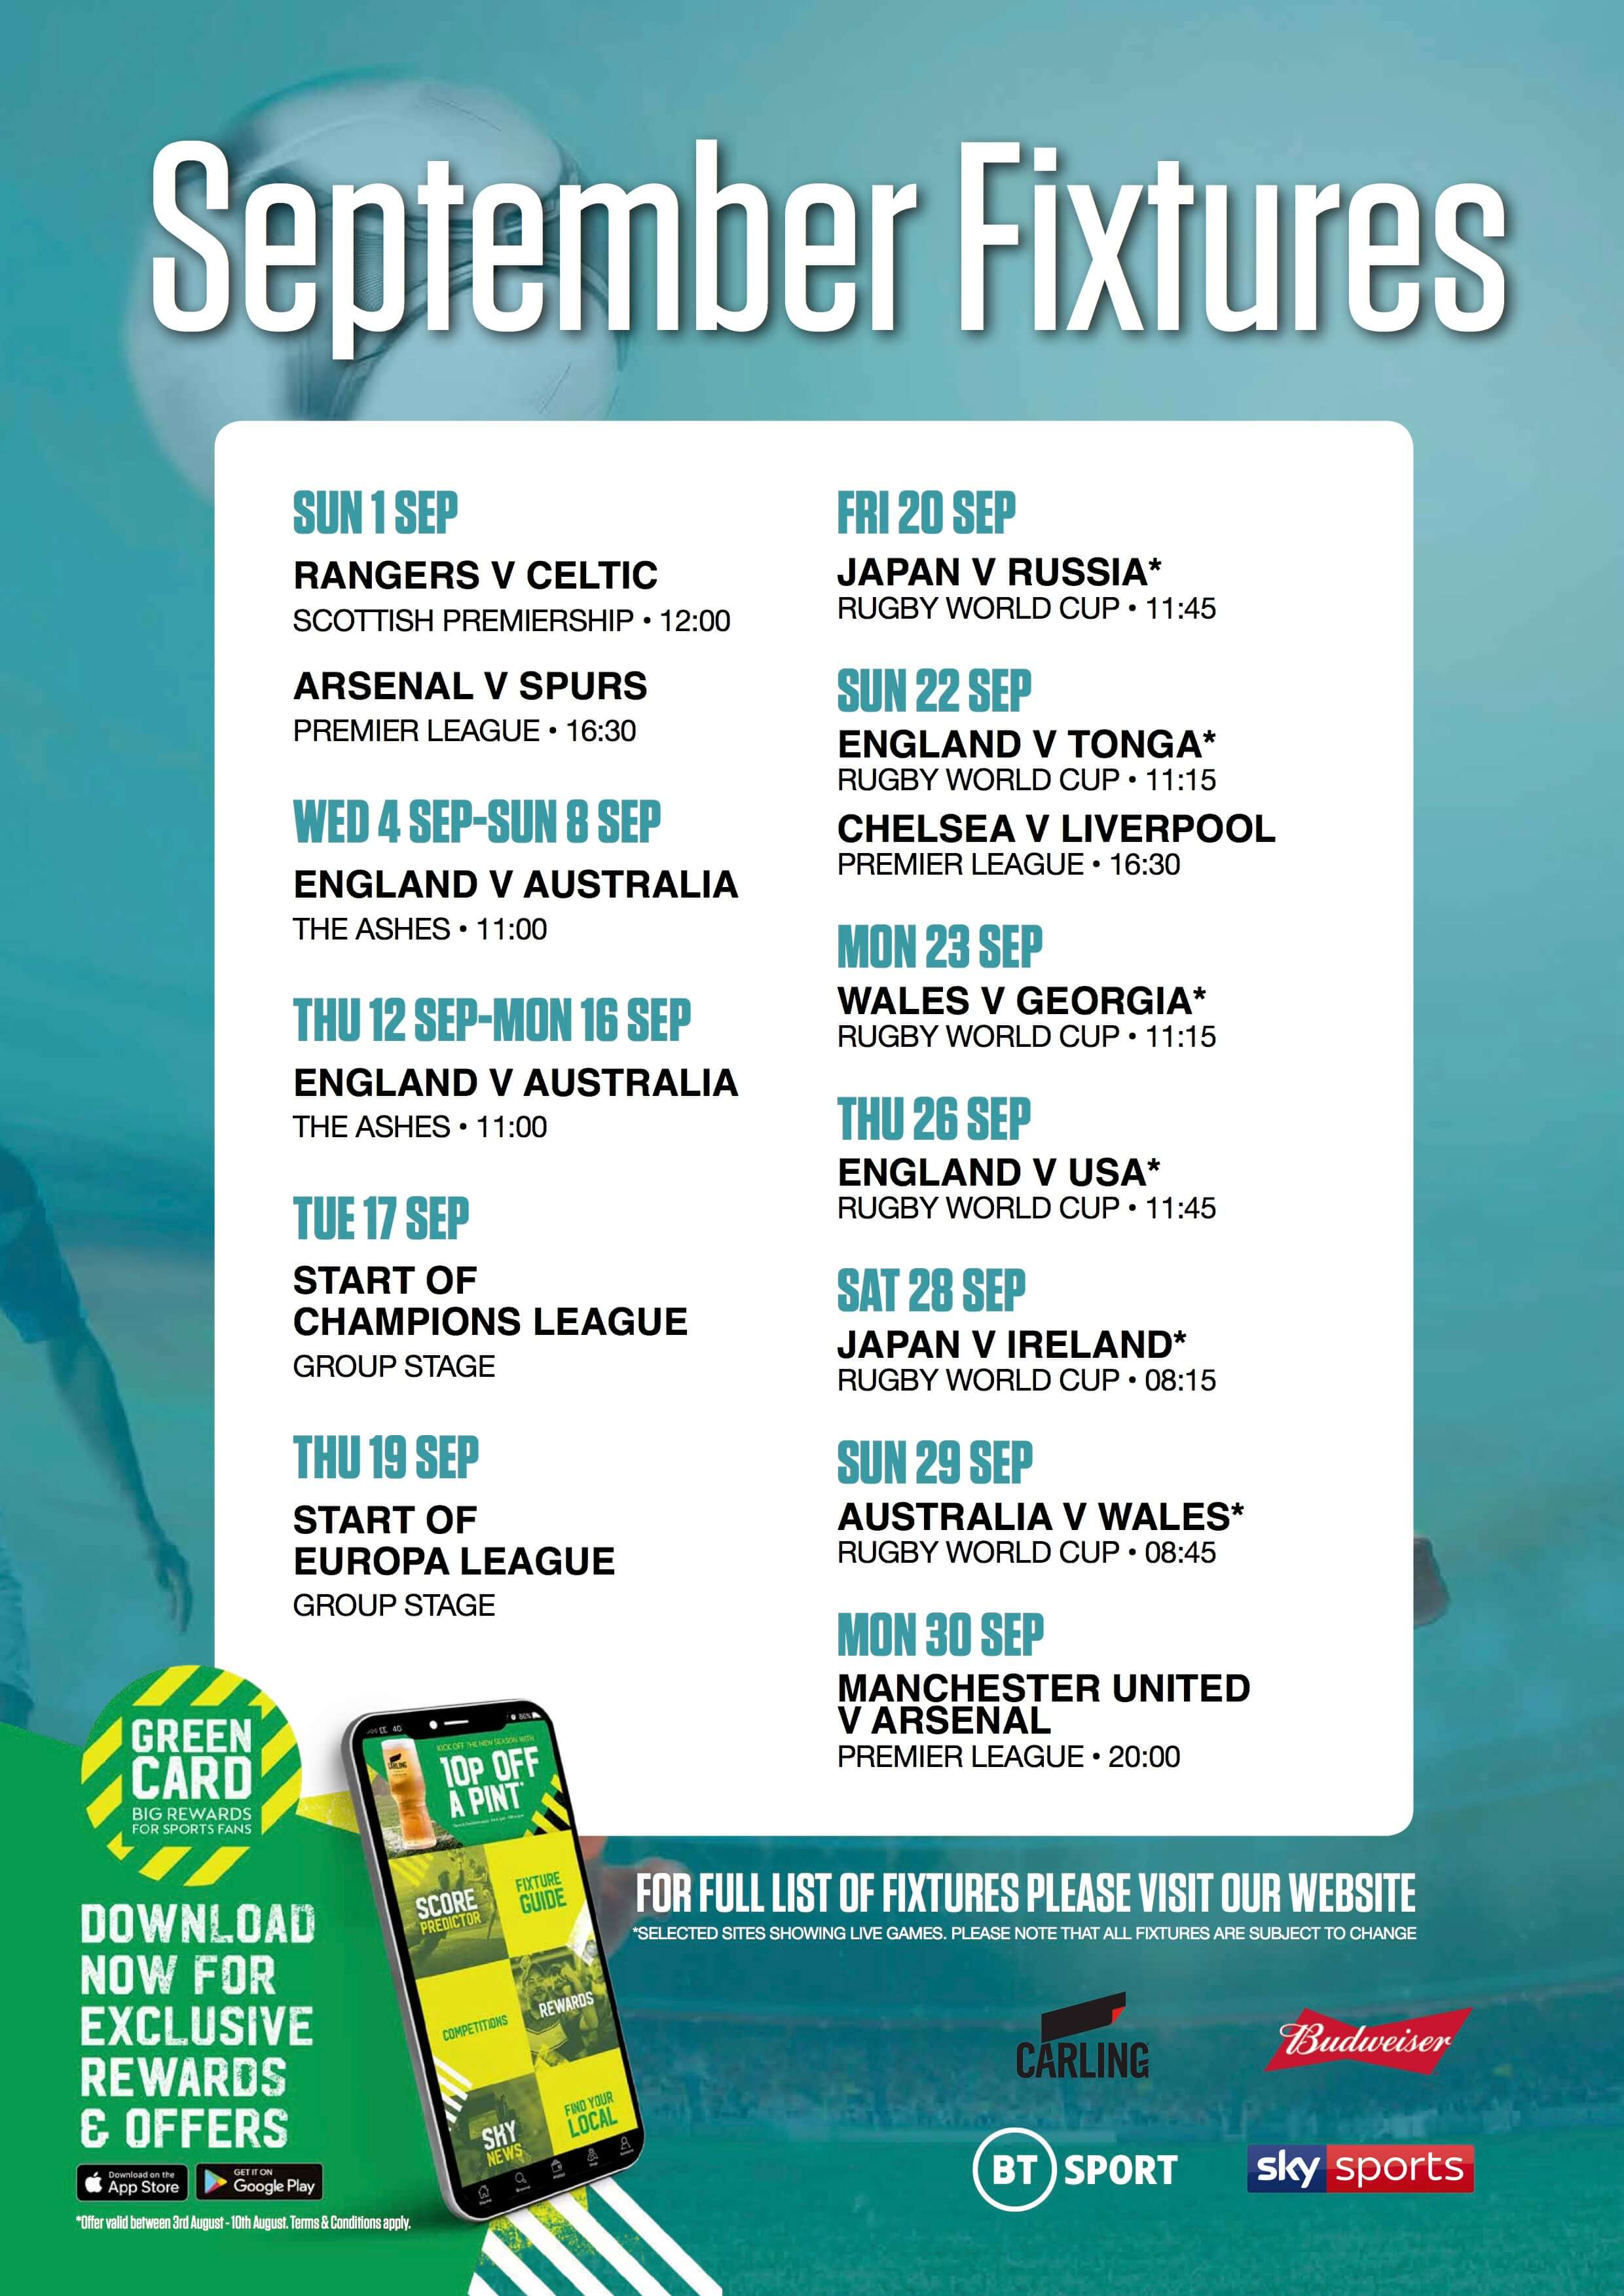 Live sports fixtures in January at The Meadow Lark